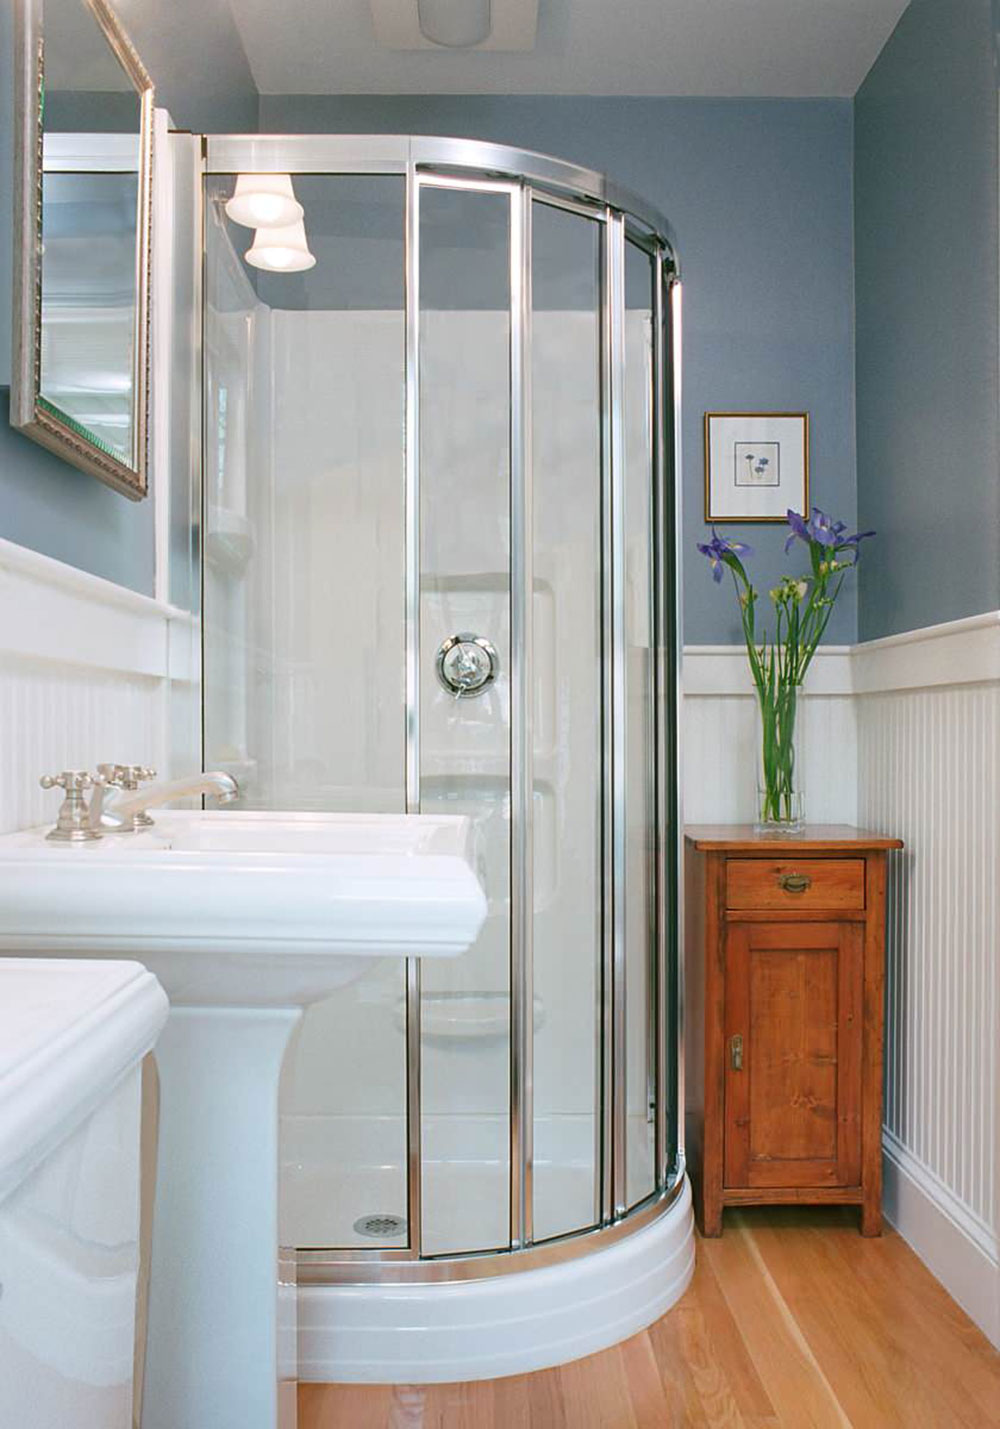 Designs Of Small Bathrooms shower tub combos actually can fit into small spaces with some tubs coming in at 60 inches in length How To Make A Small Bathroom Look Bigger1 How